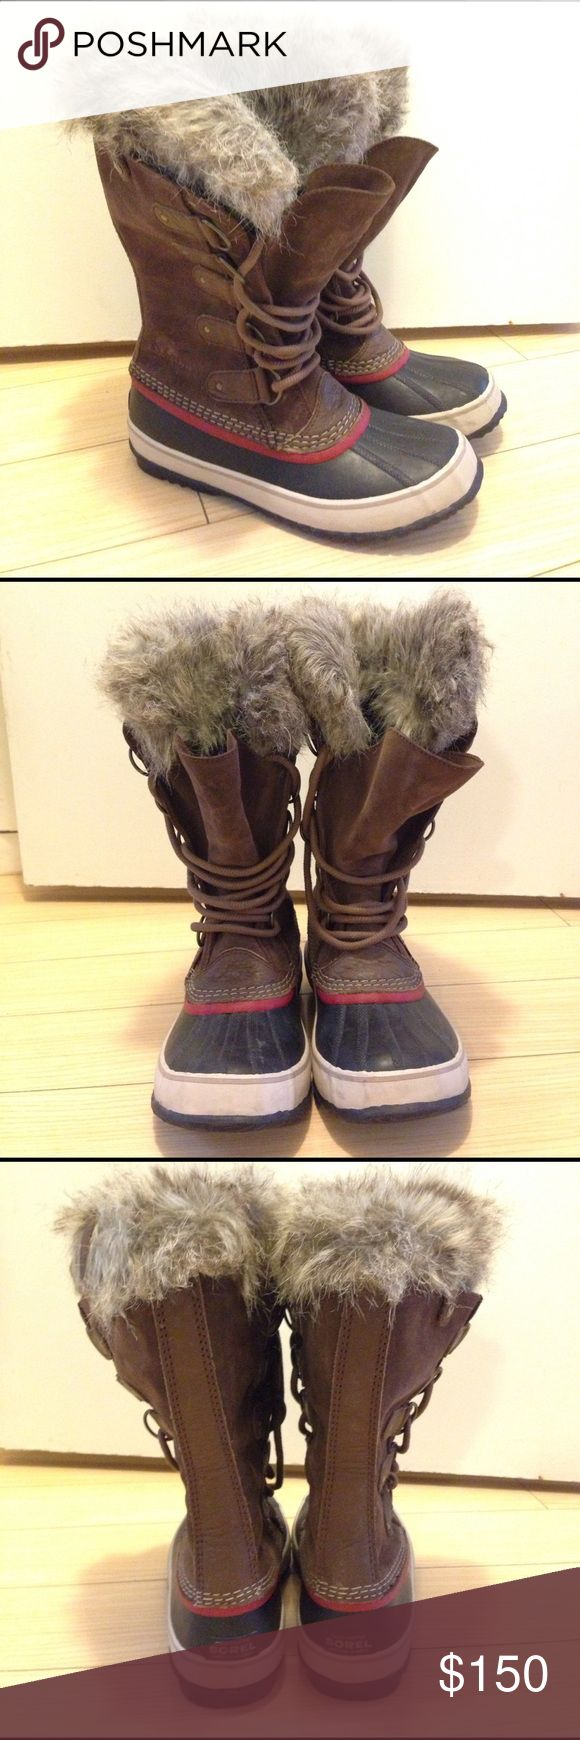 Women's Sorel Joan of Arctic Waterproof Snow Boots Sorel waterproof snow boots. Size 10. Women's Joan of Arctic style in Umber/Red Dhalia. Just bought in January for a trip to Utah. Only worn 3 times. I live in LA so have no real use for them here, lol. UPPER: Waterproof suede leather upper. Faux fur cuff. Seam-sealed waterproof construction. INSULATION: Removable 6 mm recycled felt inner boot. MIDSOLE: 2.5 mm bonded felt frost plug. OUTSOLE: Handcrafted waterproof vulcanized rubber shell…